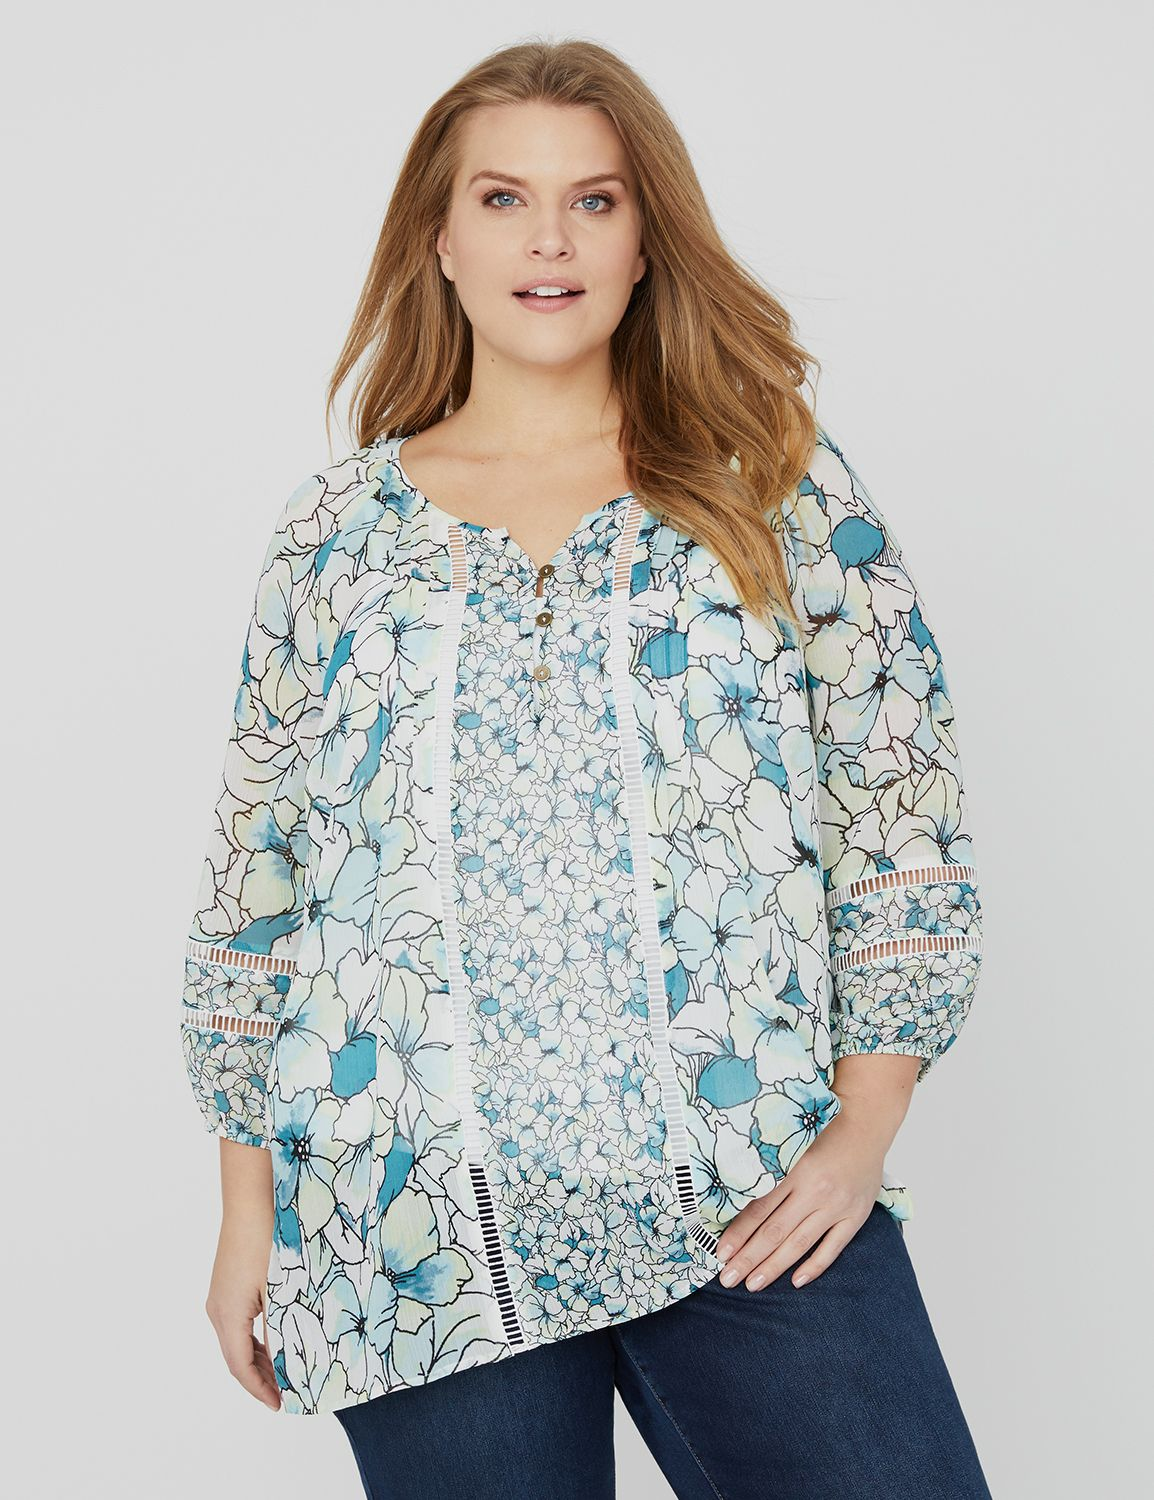 Floral Courtyard Blouse Floral Courtyard Blouse MP-300103617